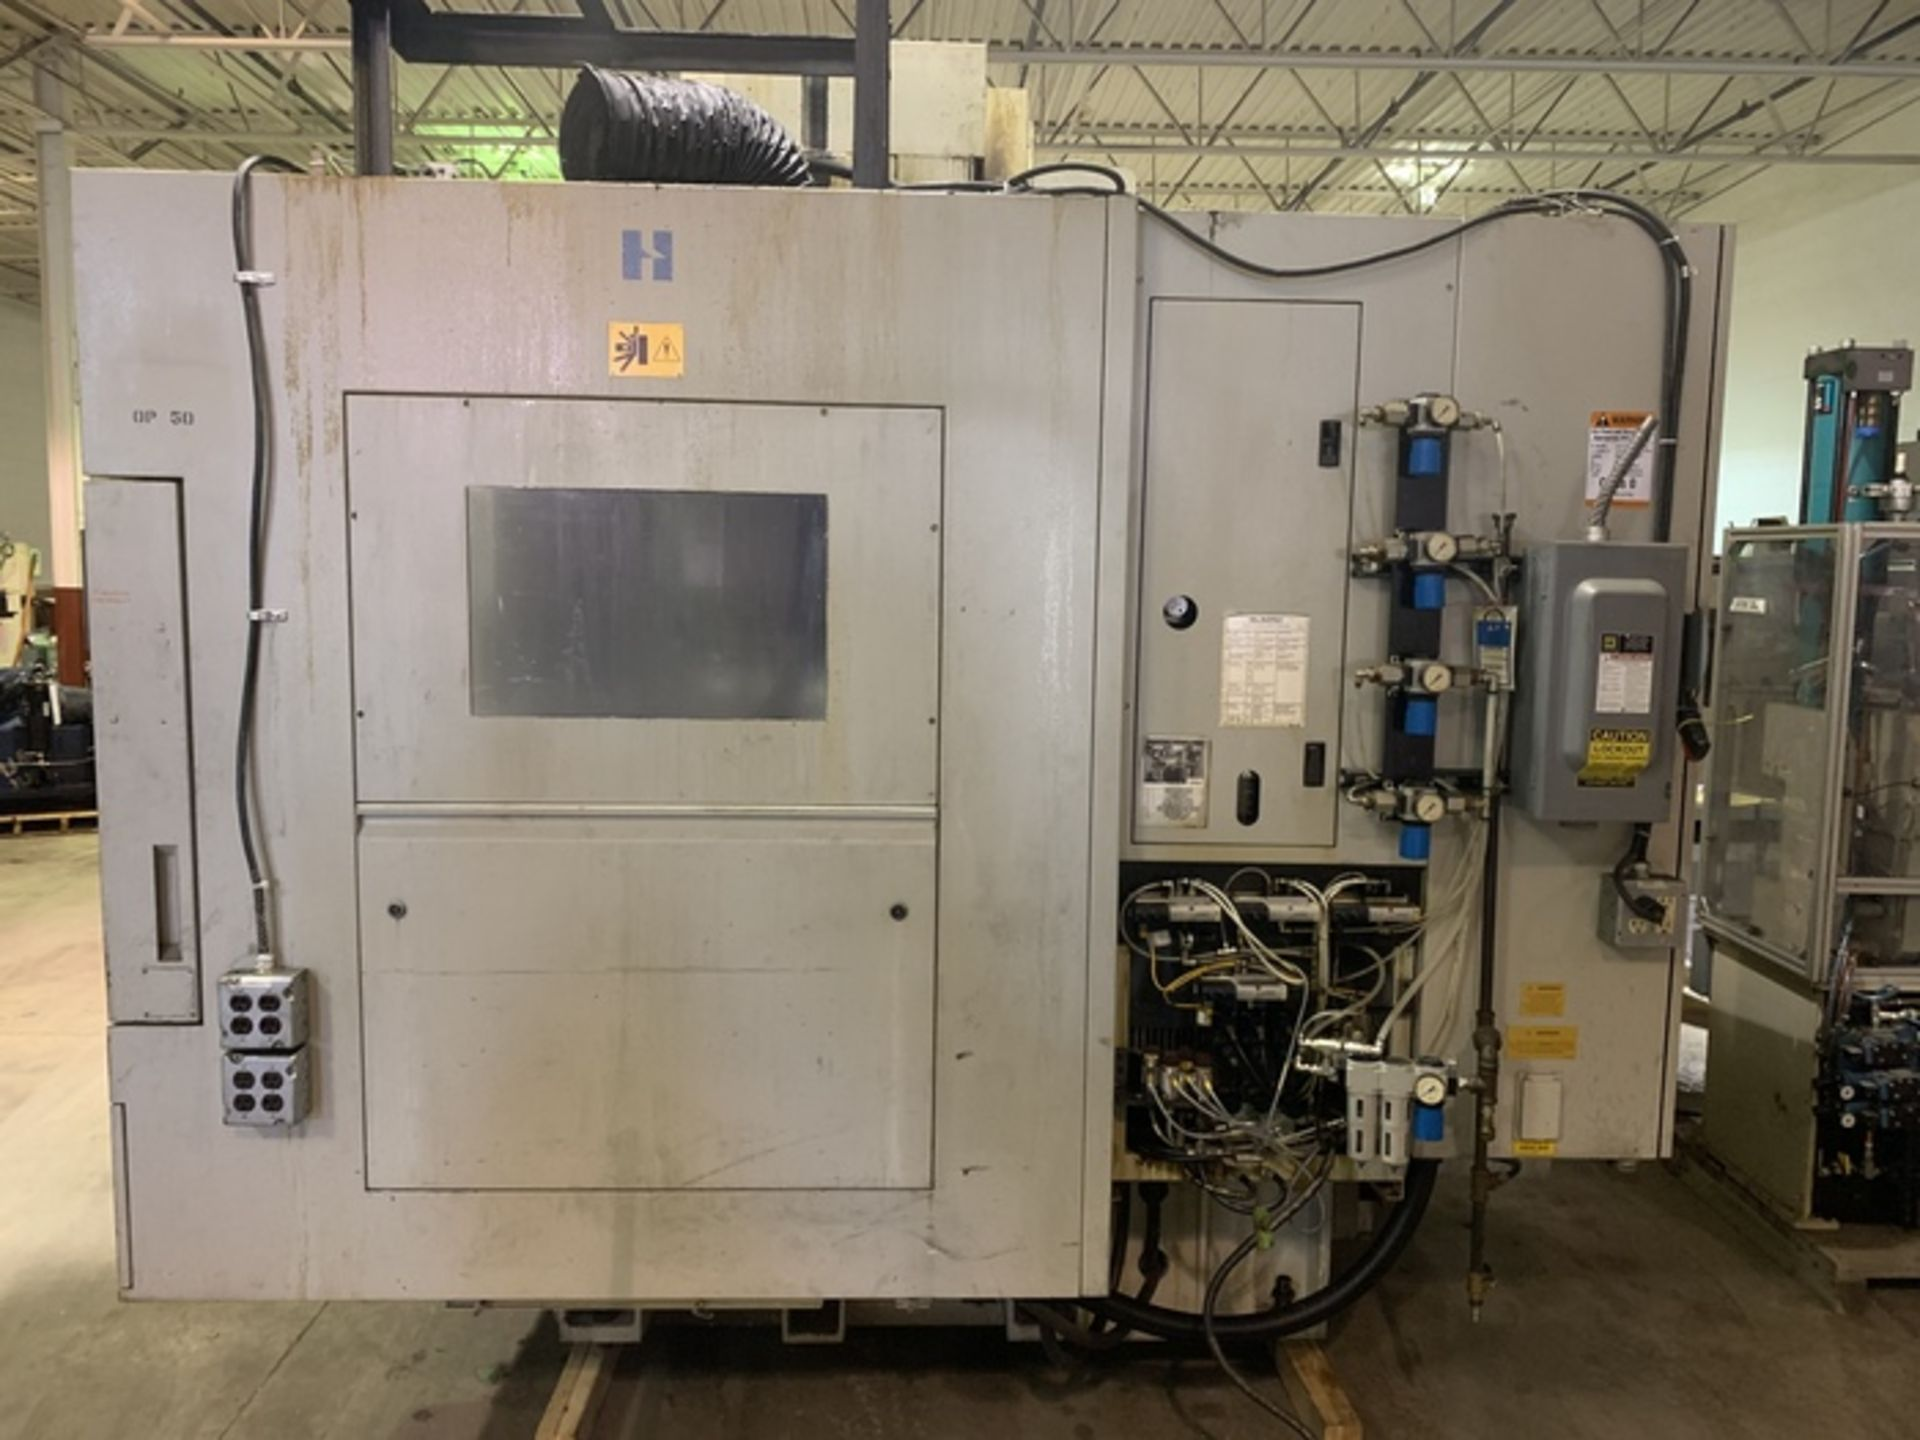 """Lot 9 - HARDINGE XR760 VMC PRODUCTION CENTER 30""""X24""""X24"""" W/4TH AXIS TRUNION, YEAR 2010, SN XRAB0A0001"""